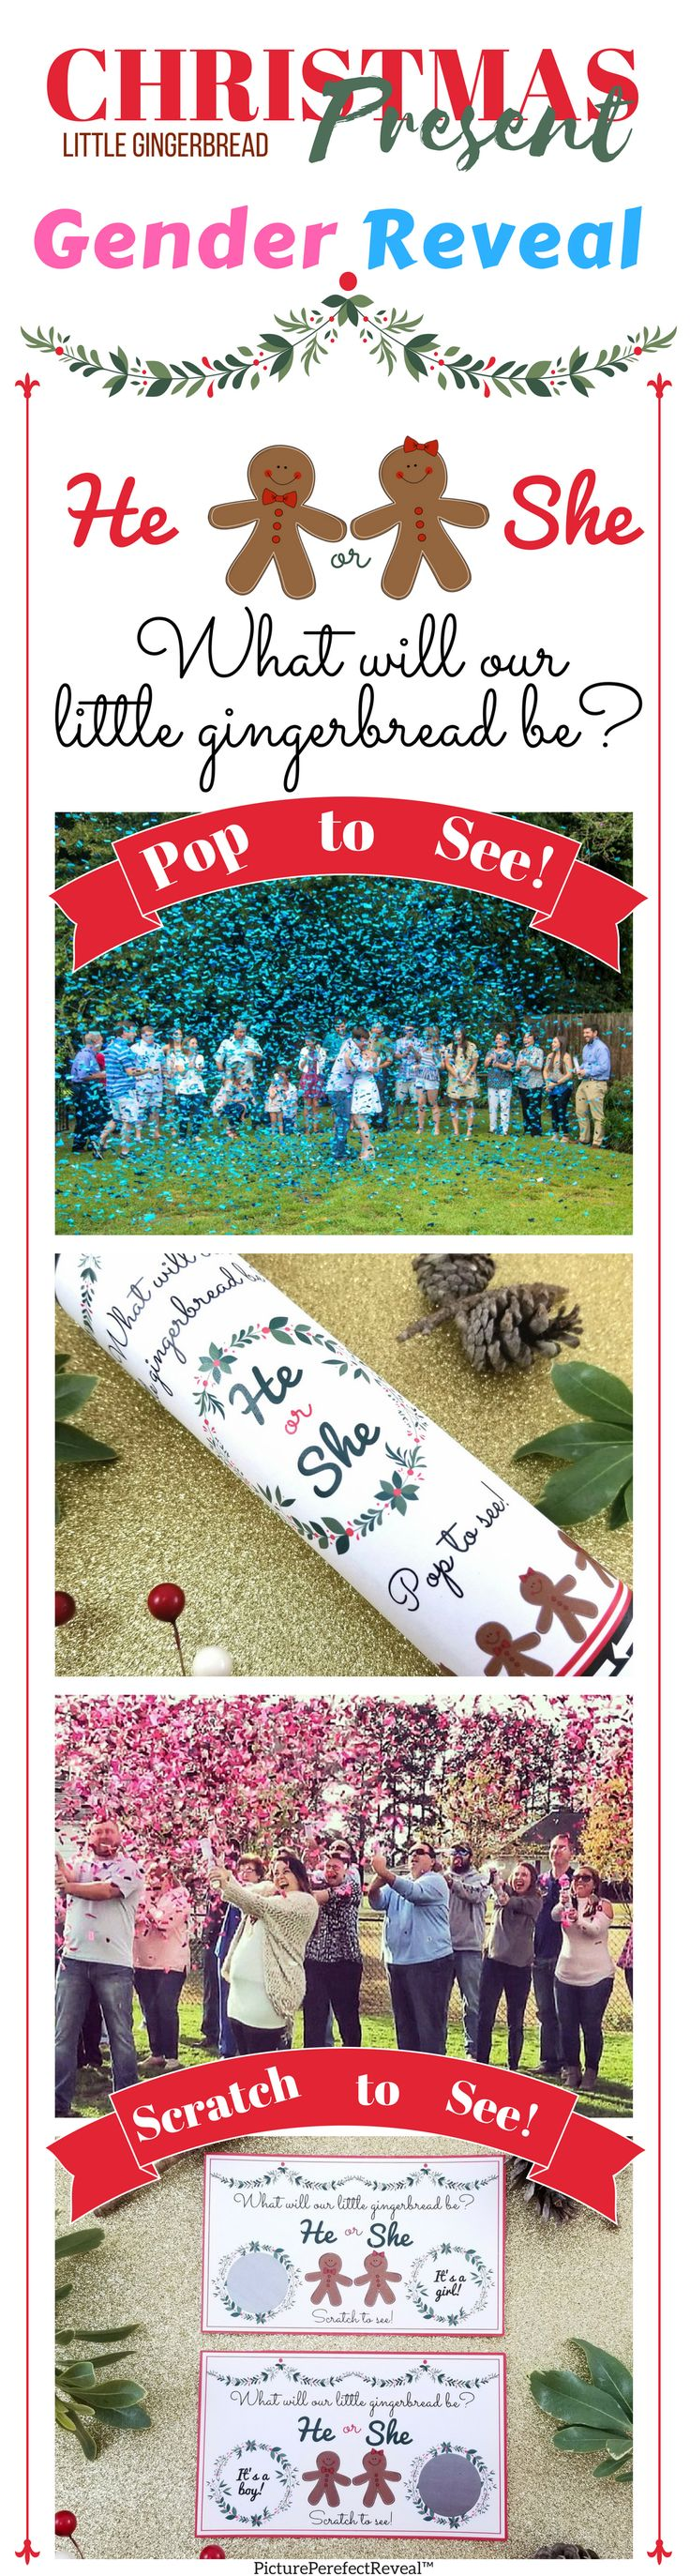 #GenderReveal #genderreveal #boyorgirl Christmas Gender Reveal Ideas #PicturePerfectReveal PicturePerfectReveal™ Confett Cannon Confetti Popper